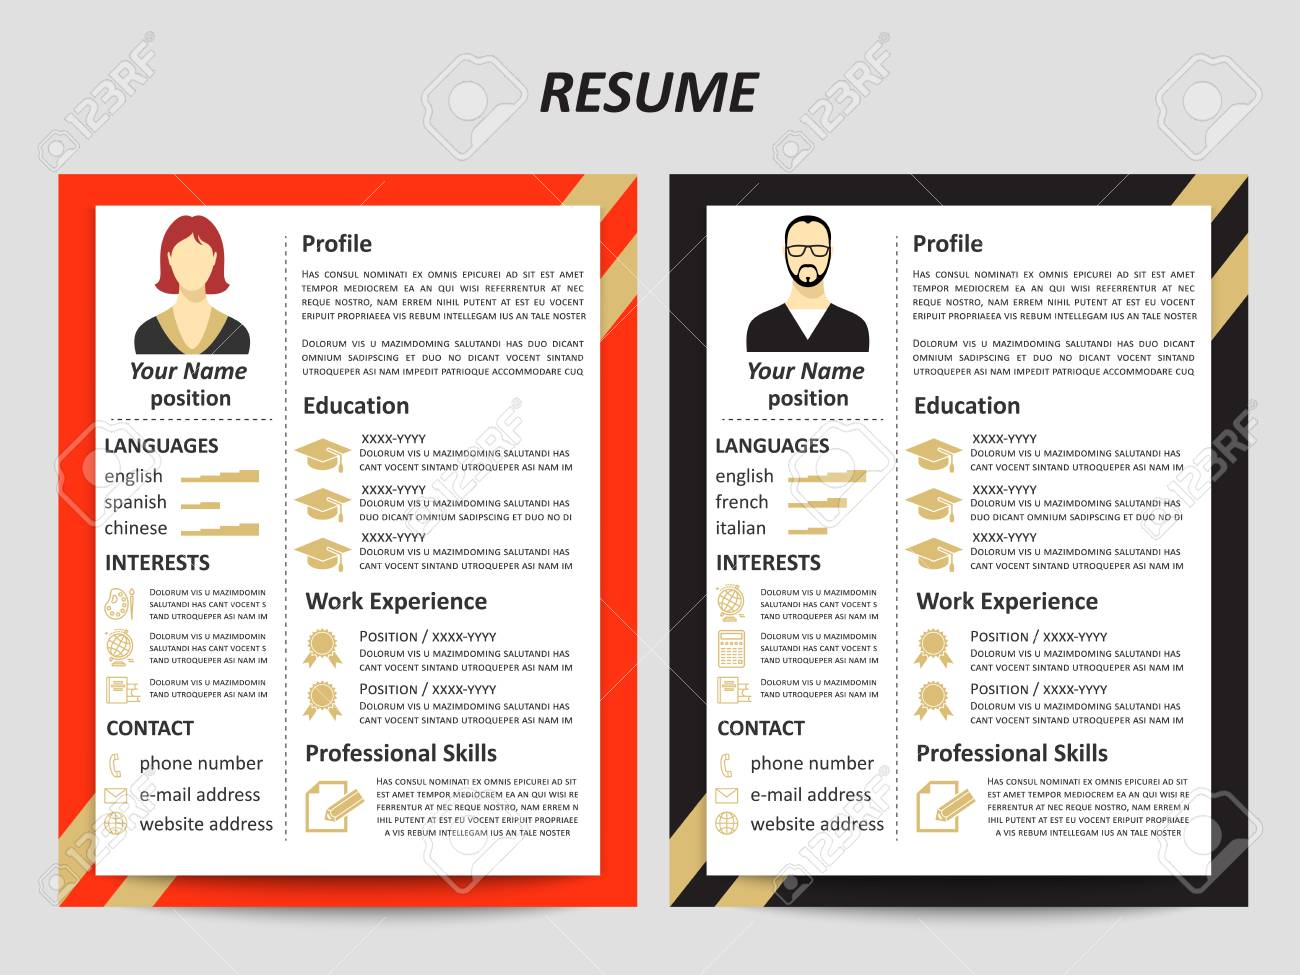 Modern Style Male And Female Resume Templates With Flat Elements